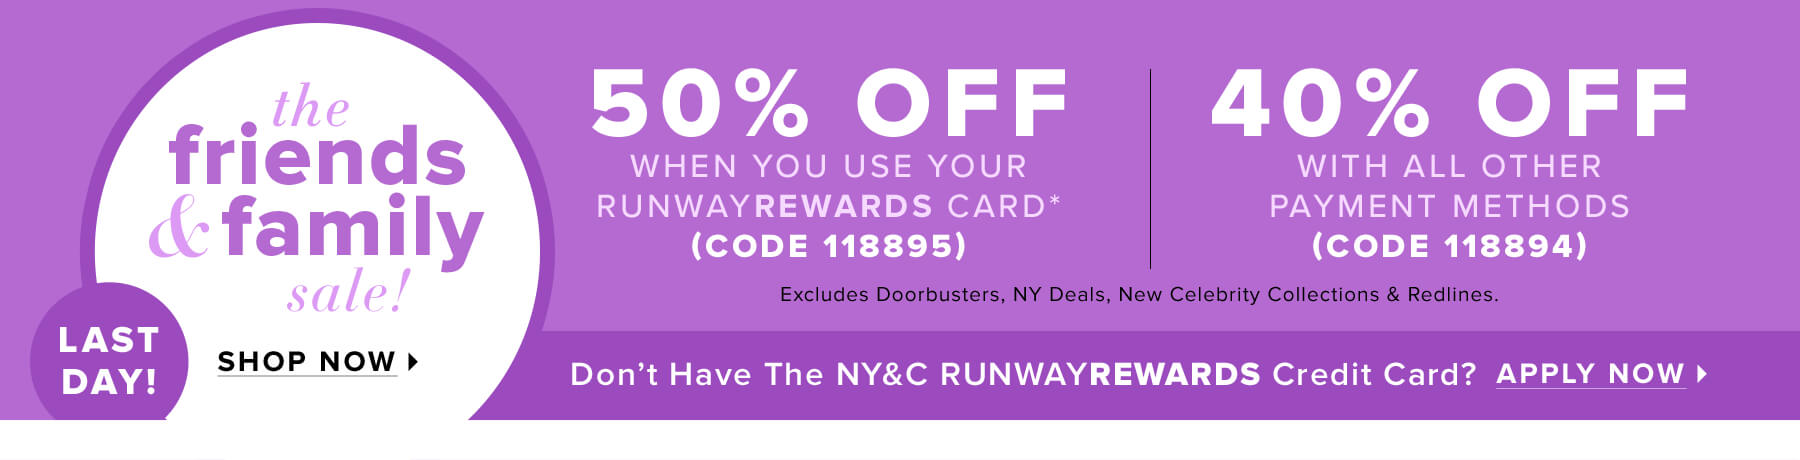 Friends & Family Sale – 50% Off with Code 118895 when You Use Your RUNWAYREWARDS Card* or 40% Off with Code 118894 with All Other Payment Methods (Excludes Doorbusters, NY Deals, New Celebrity Collections & Redlines).